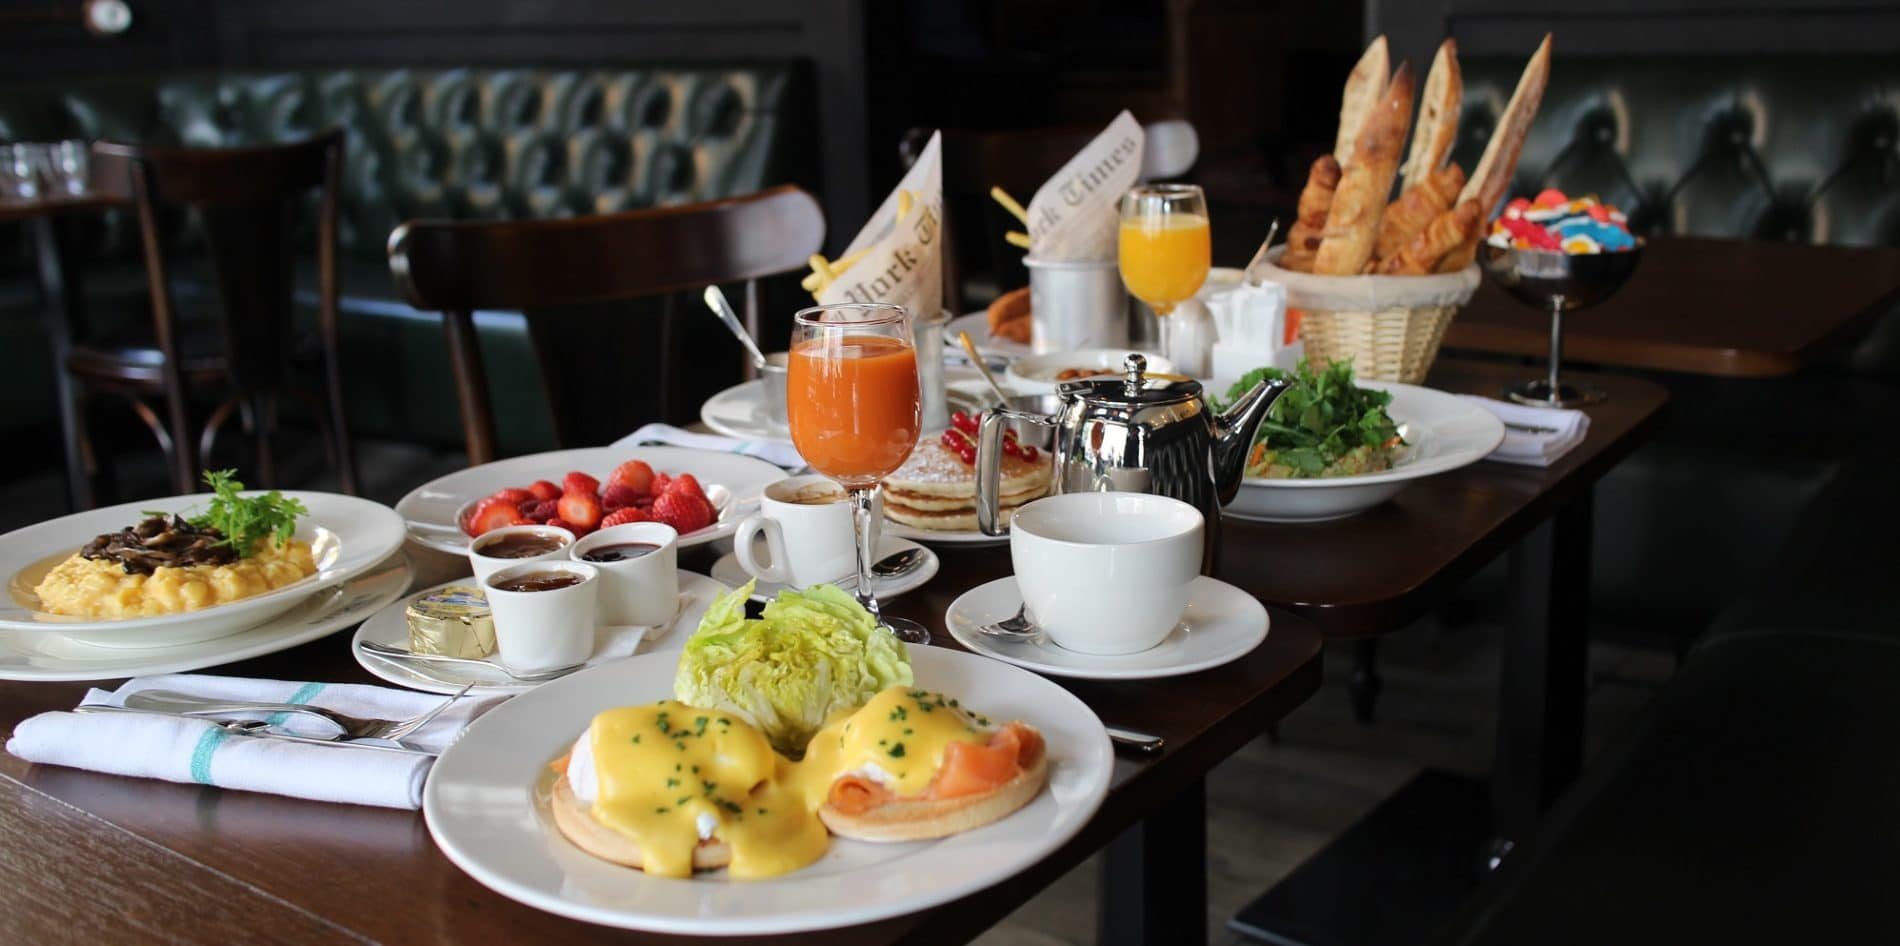 Le mabillon brunch paris for Carrelage du sud boulevard saint germain